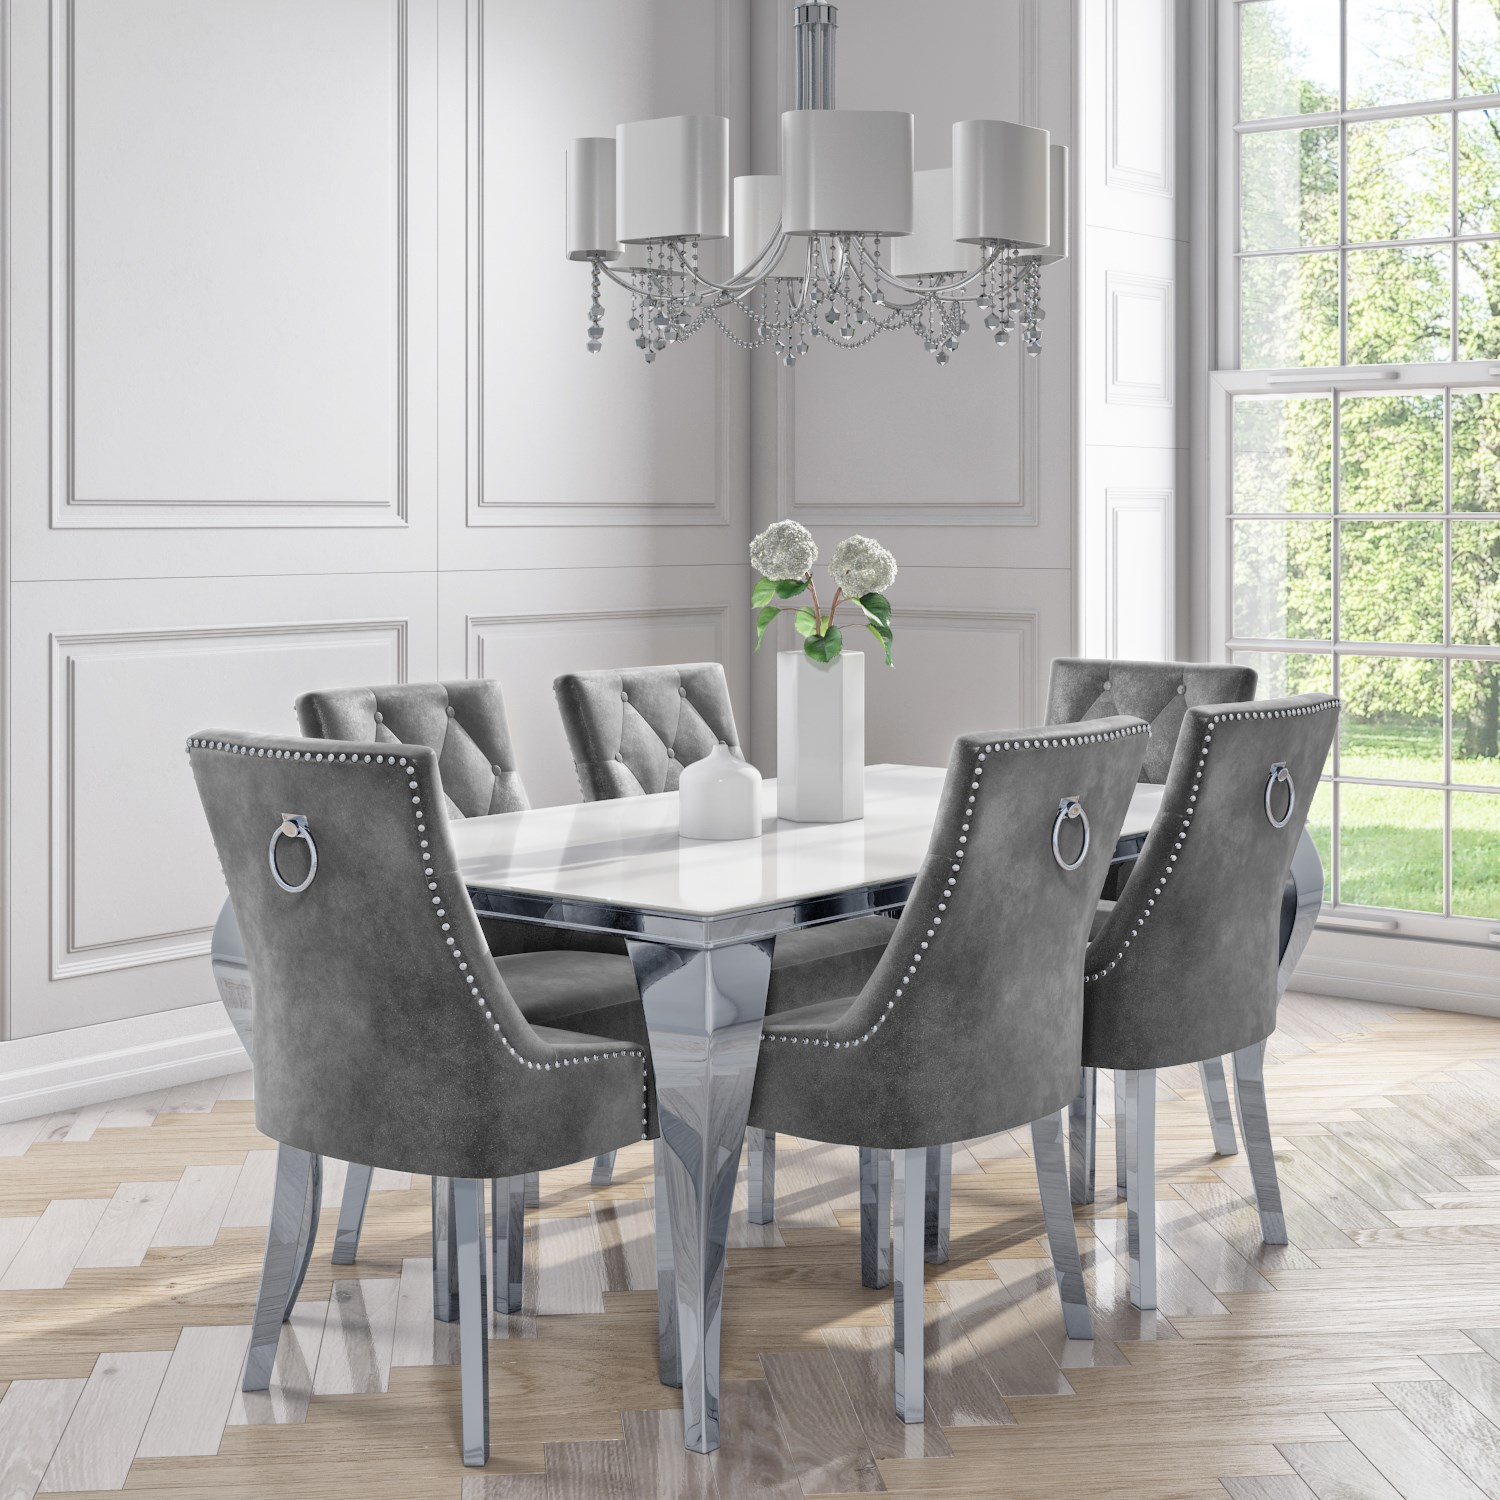 Details about Mirrored Dining Table with 9 Chairs in Grey Velvet   Jade  Bouti BUN/ANE9/79979